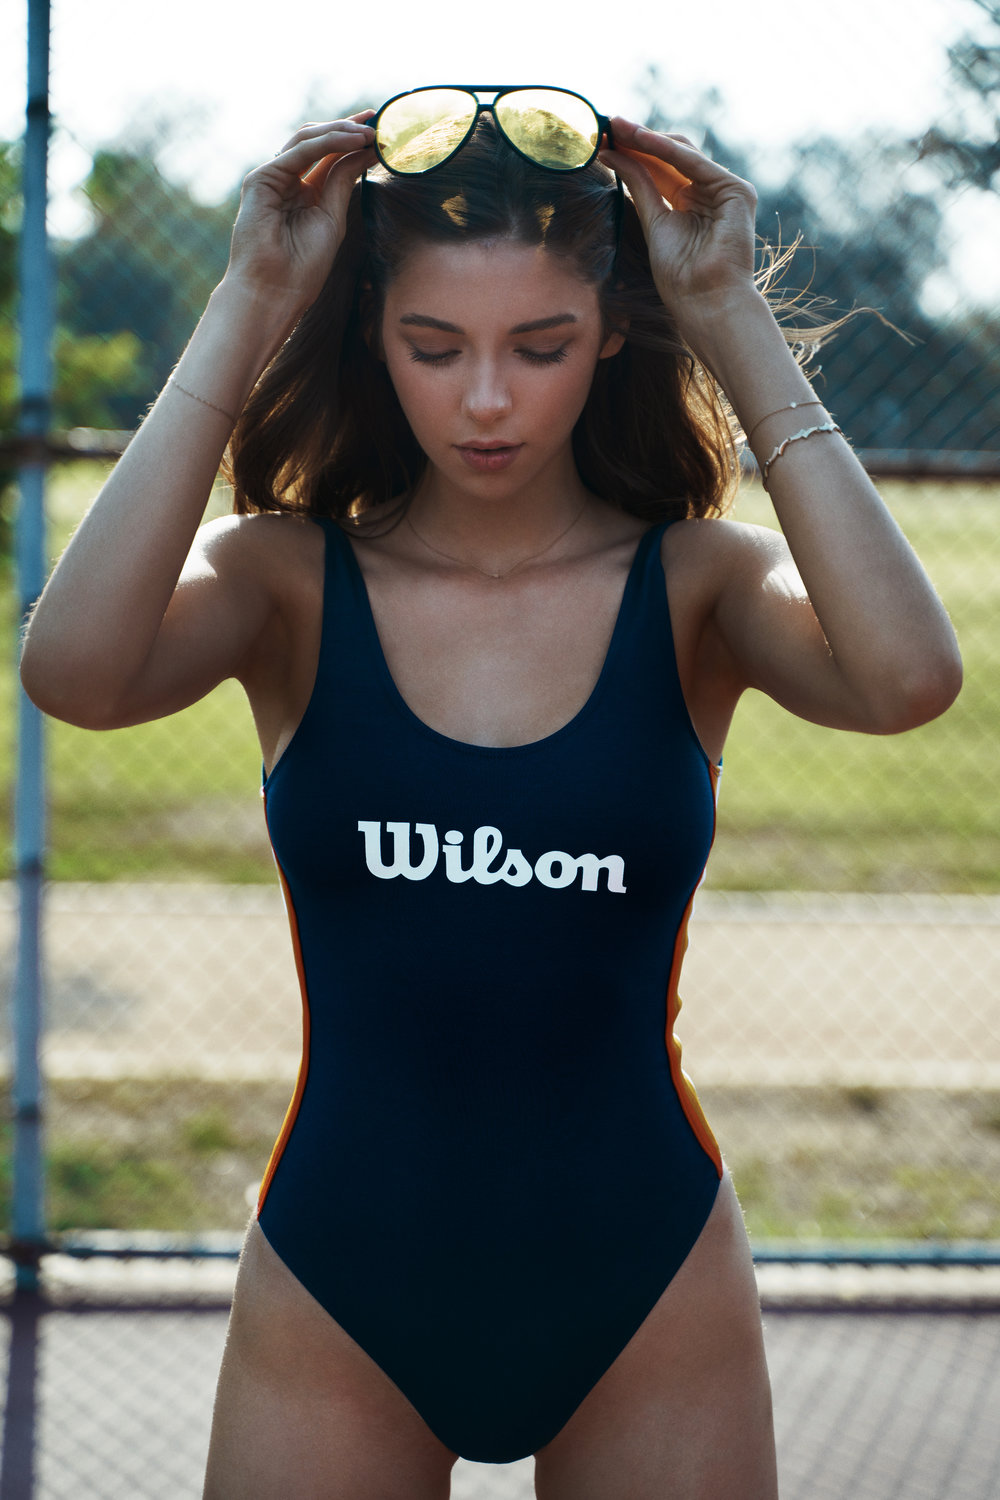 Tamron 28-75mm - Model in Bodysuit